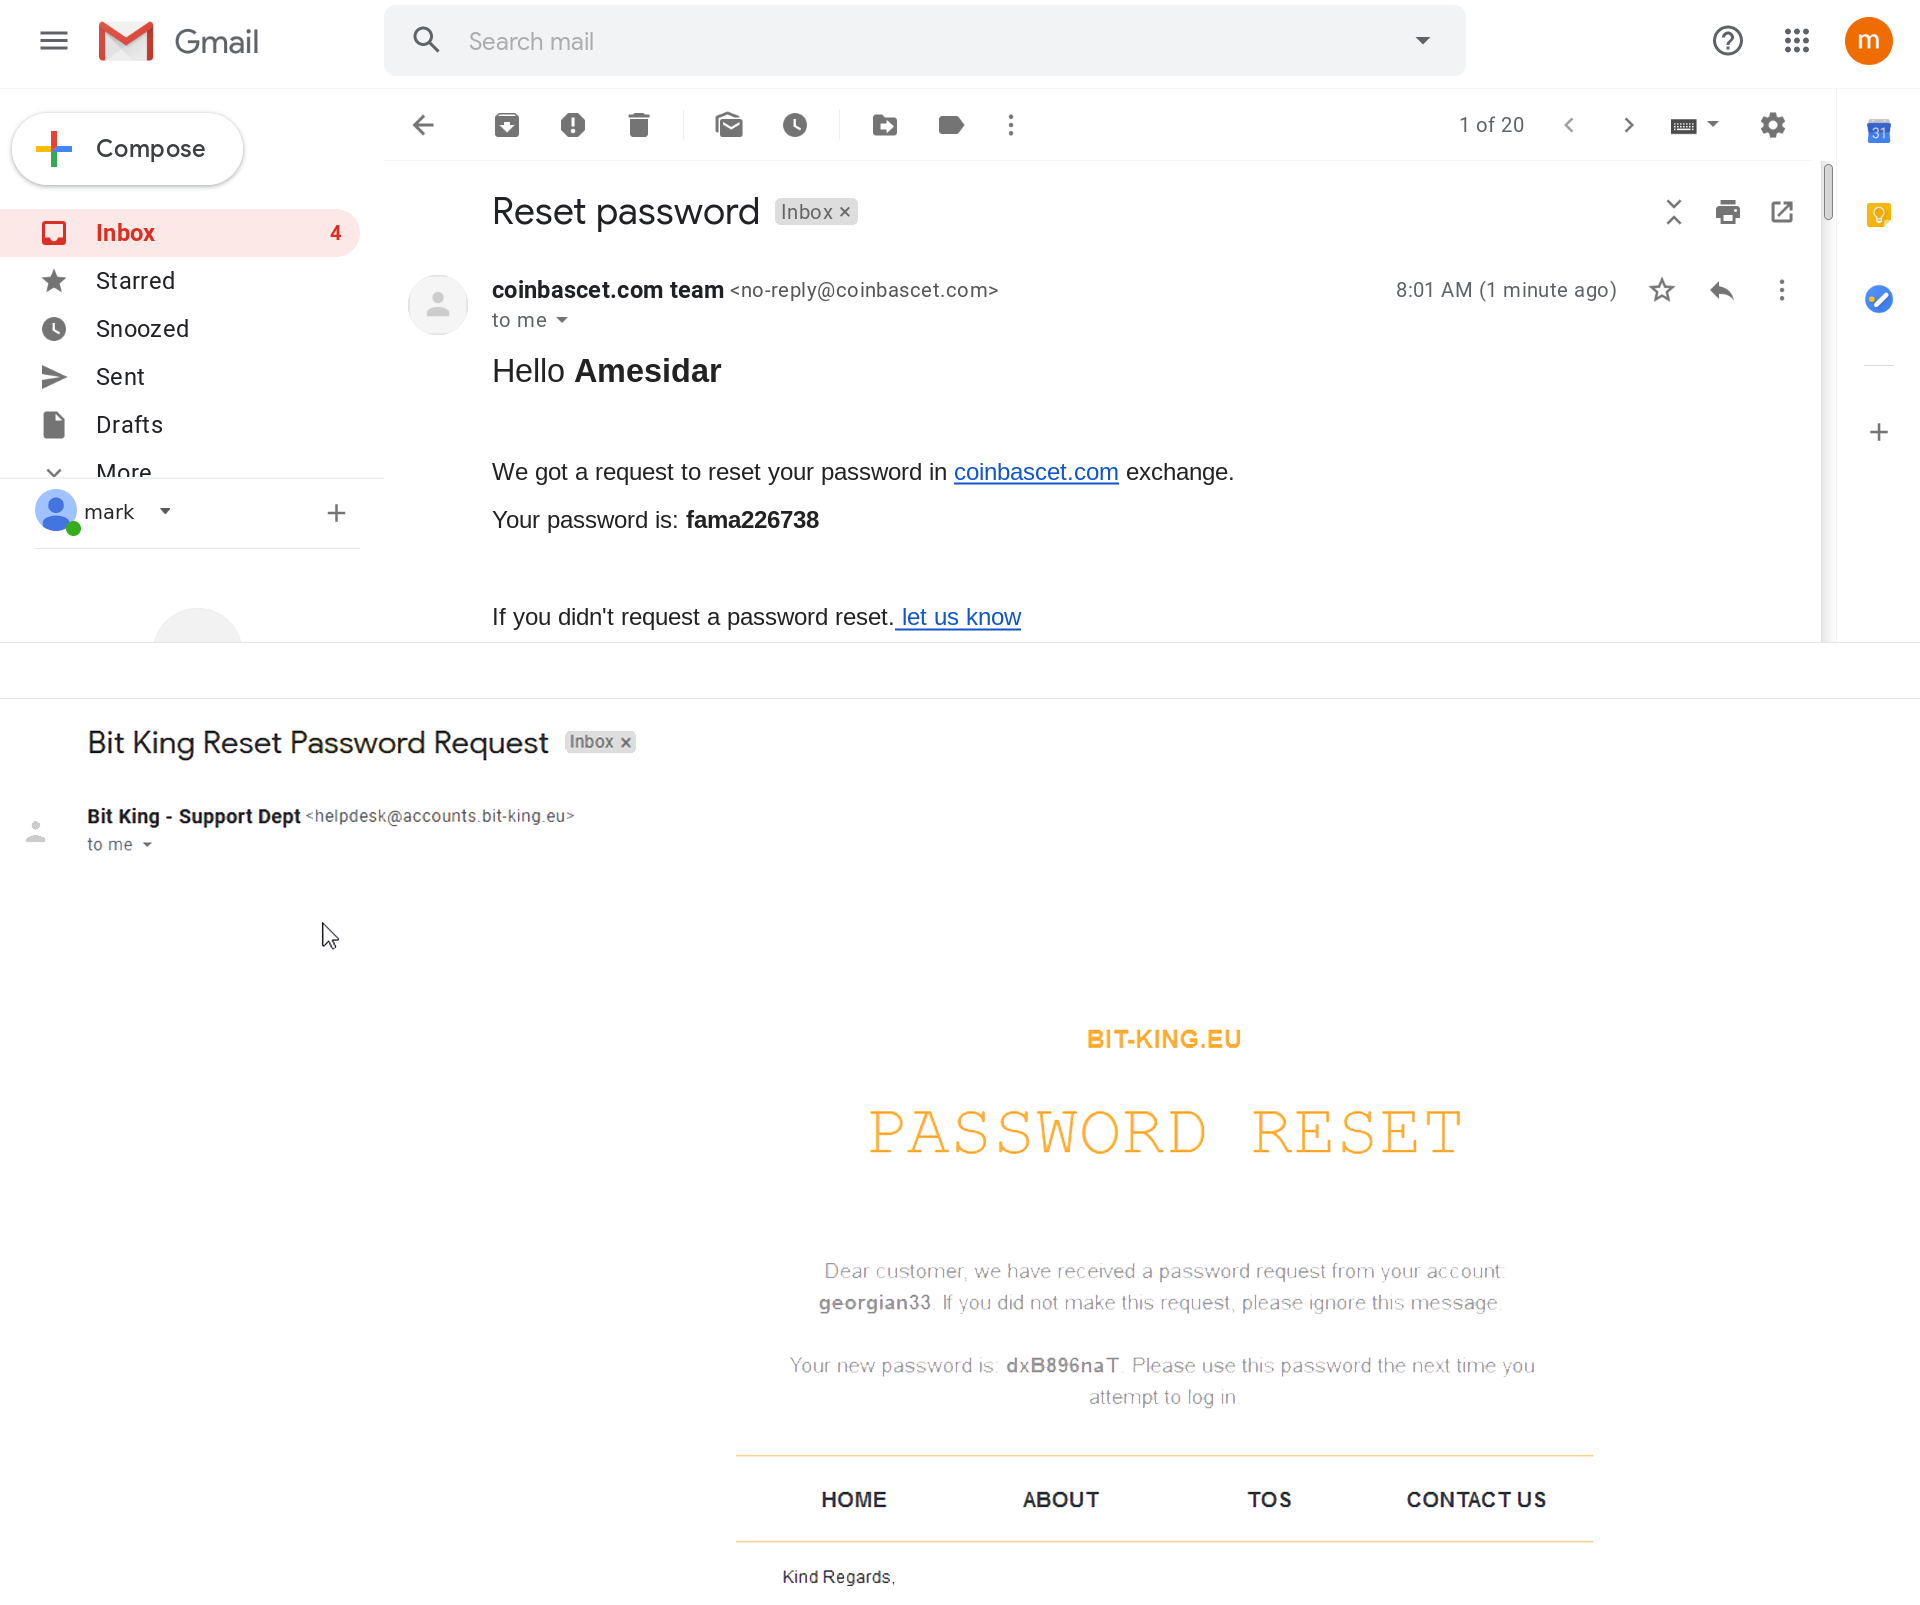 Fake password reset e-mails for equally fake cryptocurrency accounts